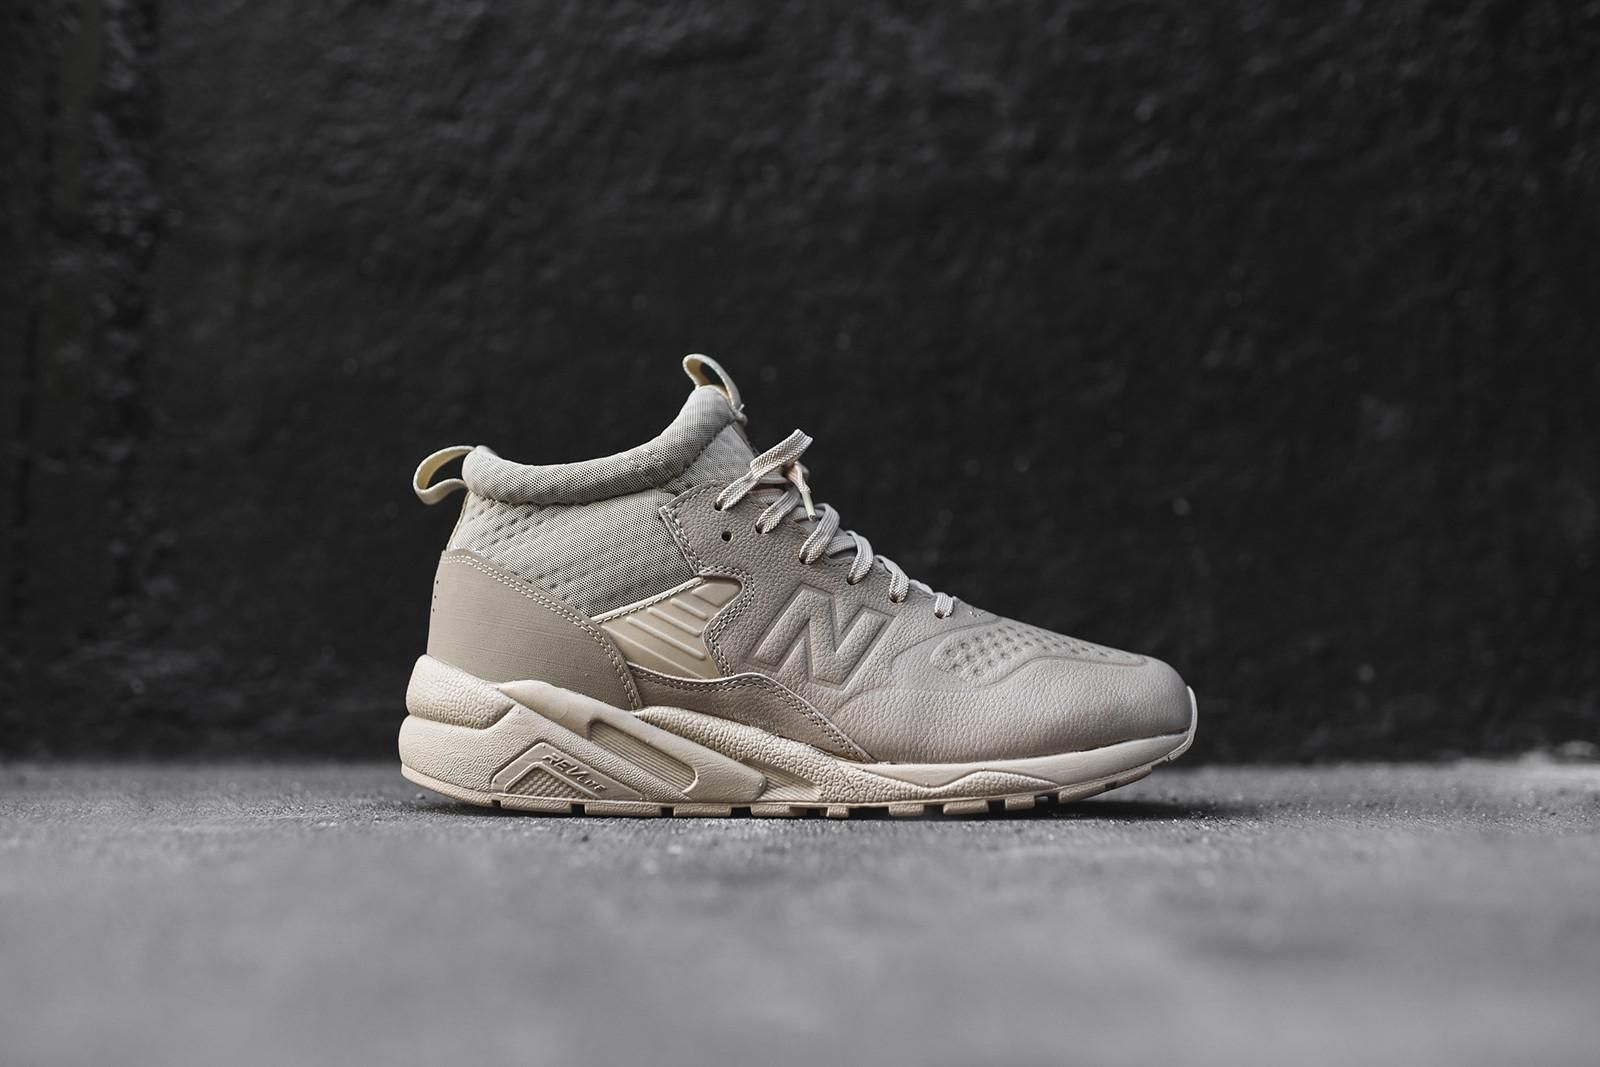 new balance 580 deconstructed mid on feet